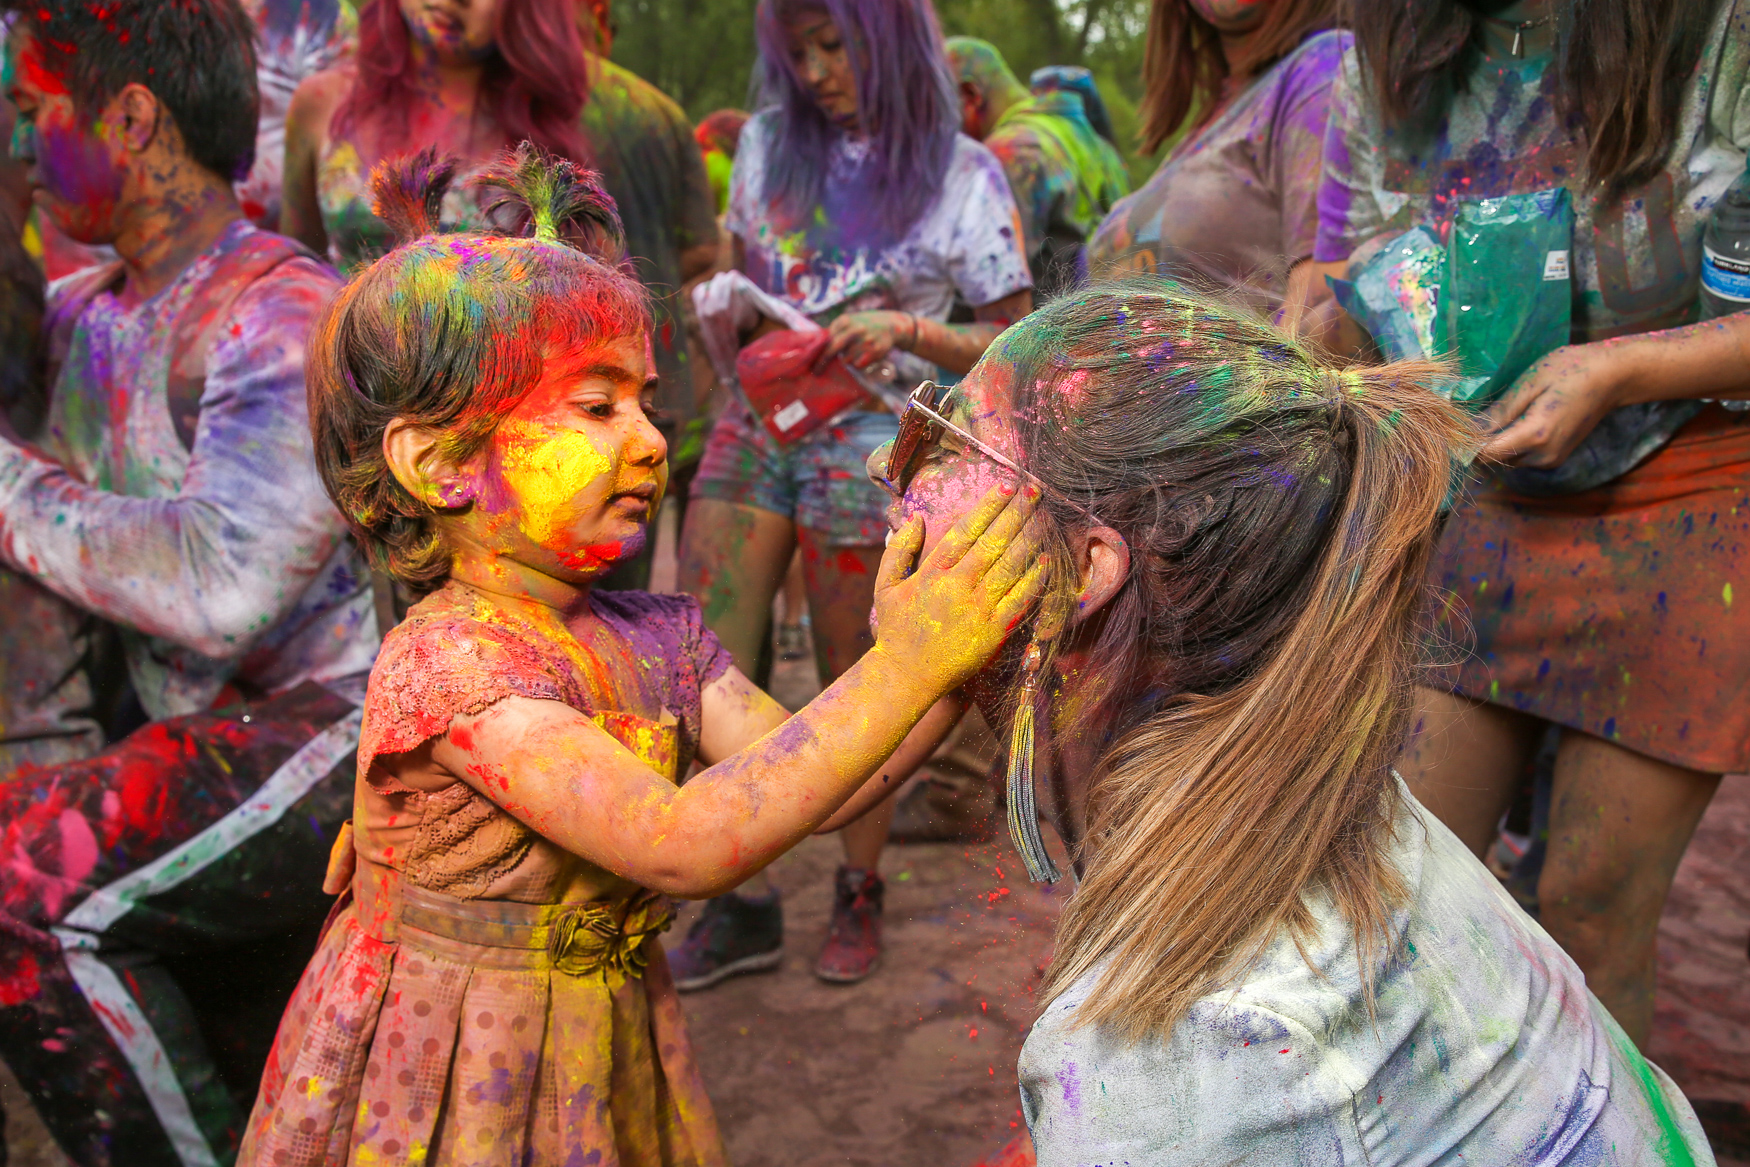 ISKCON of D.C., a local Hare Krishna Temple, celebrated Holi on May 6 by inviting people of all faiths to celebrate the annual spring holiday. Hundreds of worshipers and revelers gathered to throw colored powder, dance and snack on delicious Indian food. Holi is celebrated by Hindus and other religious groups, but the day is meant to unite loved ones through lighthearted fun. (Amanda Andrade-Rhoades/DC Refined)